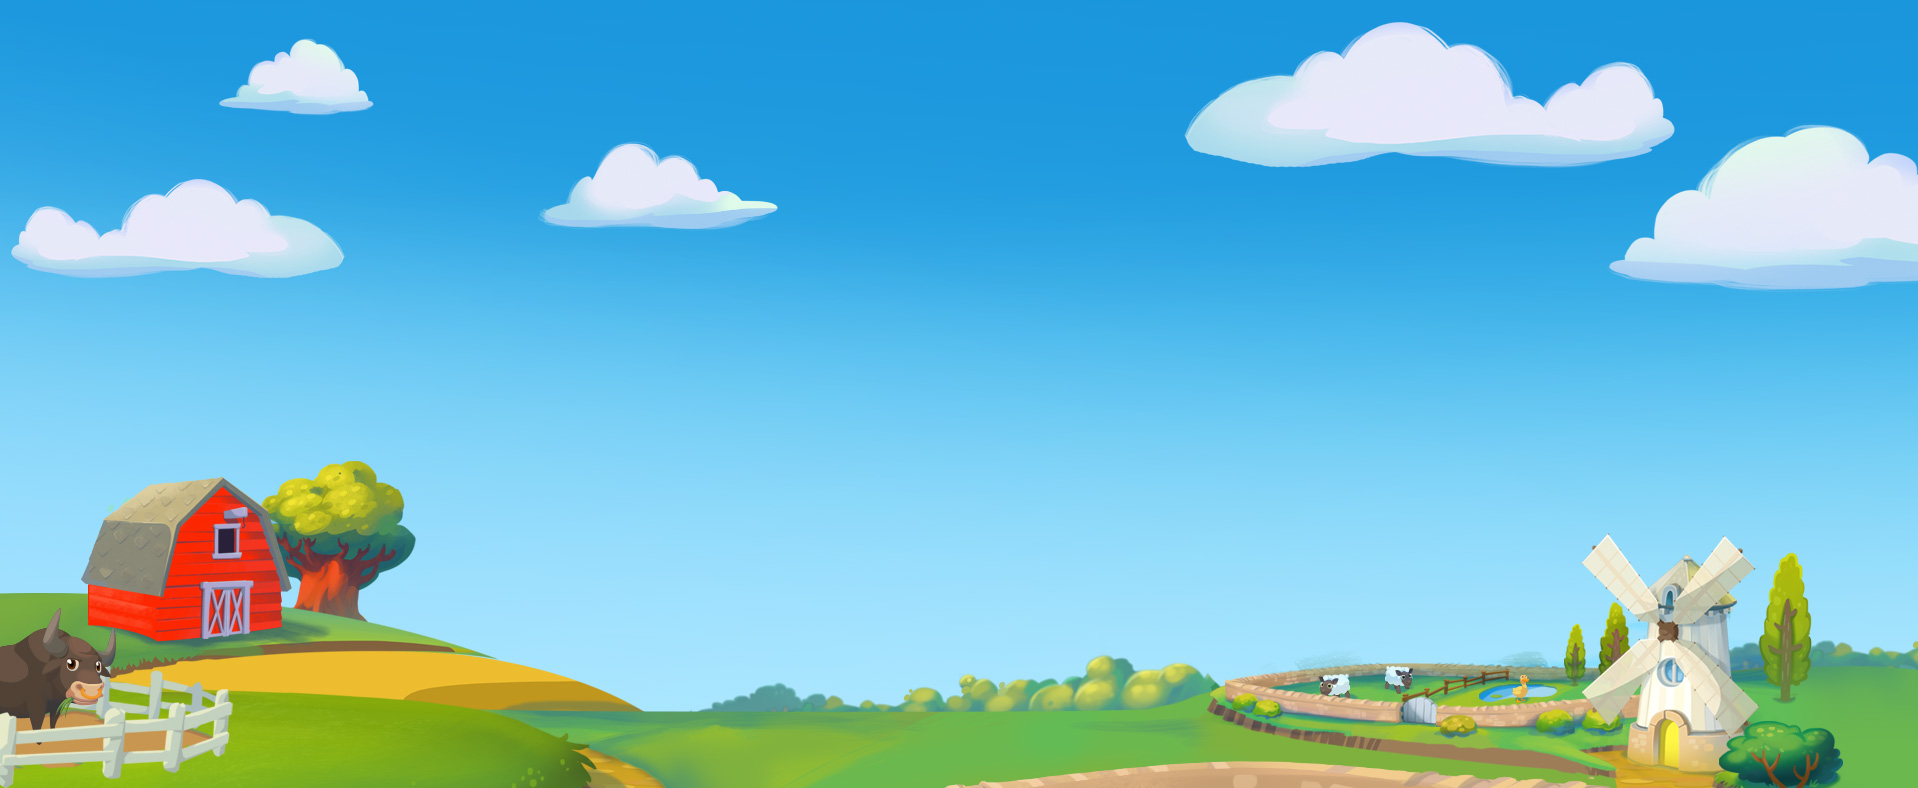 background farm 11 - Farm Background PNG